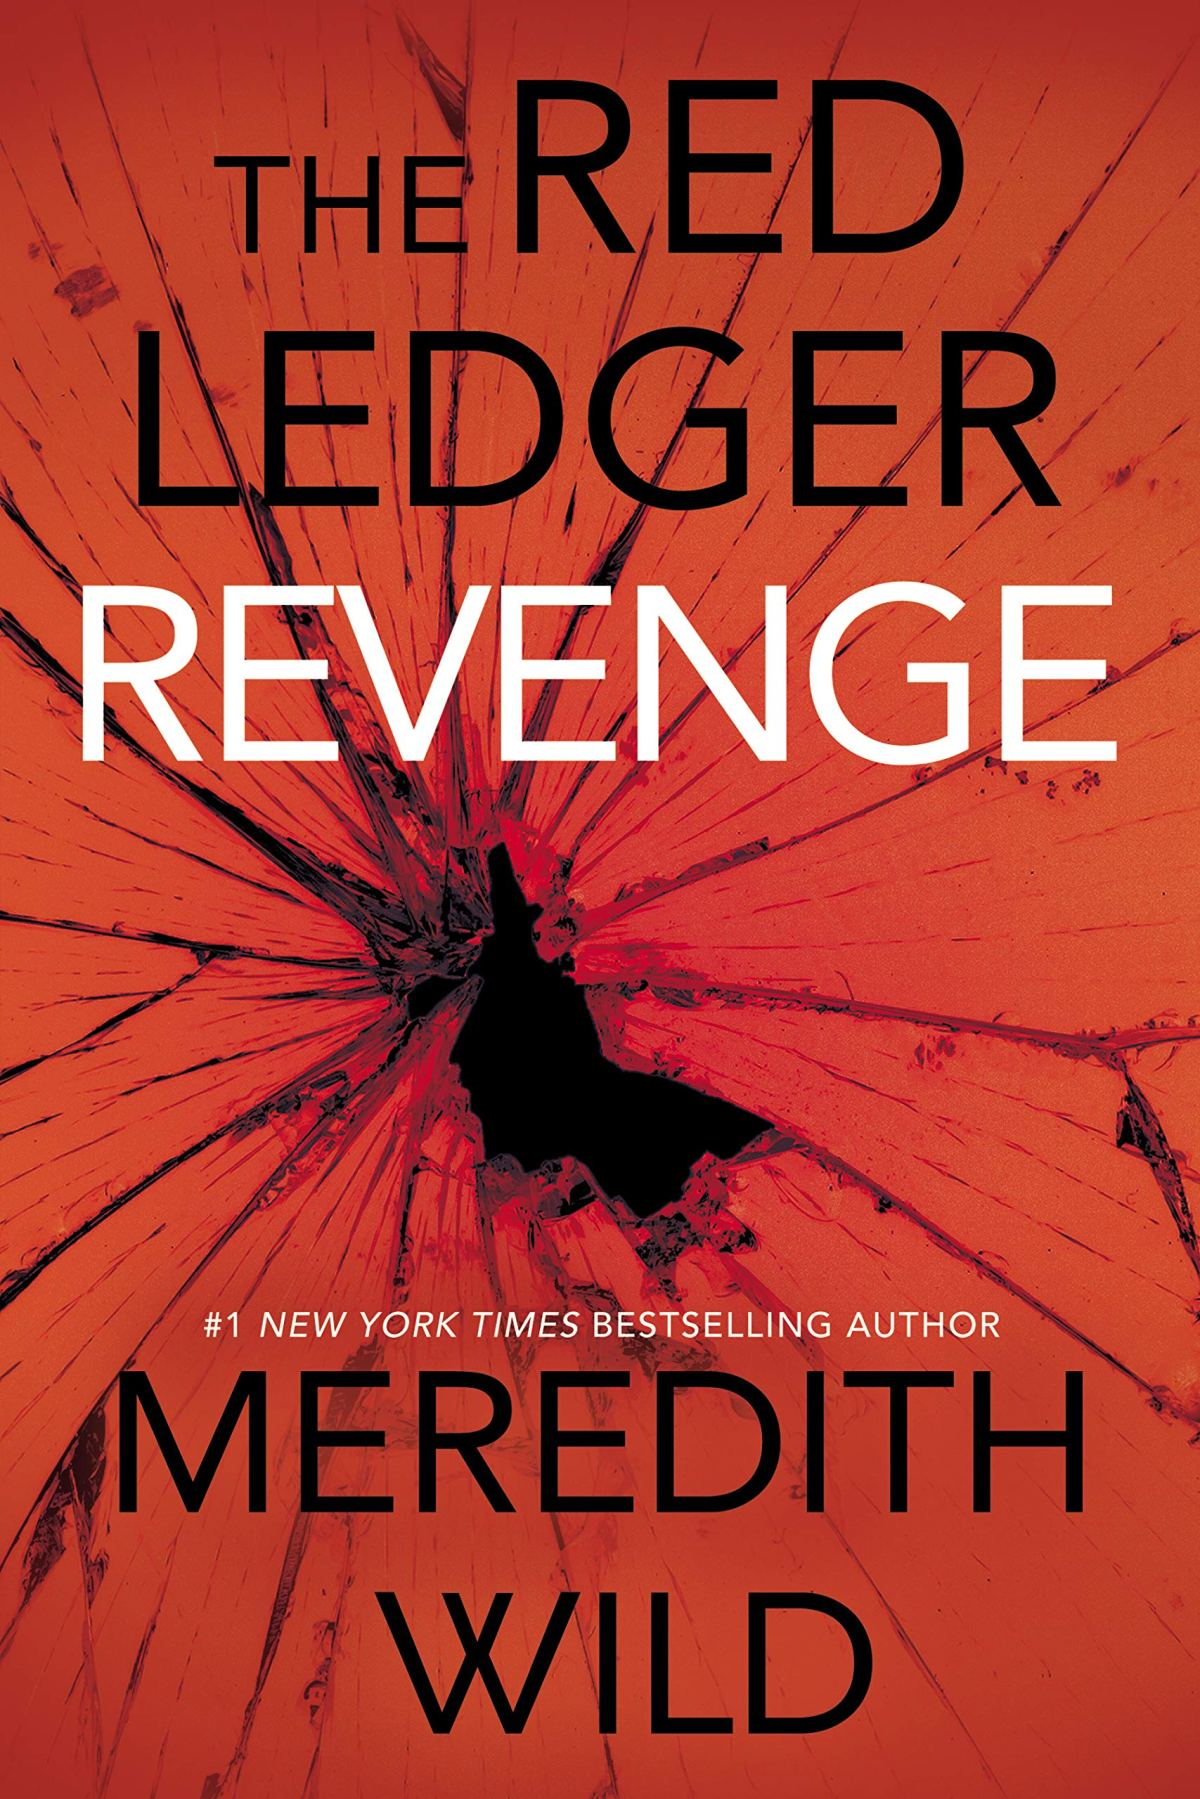 Review: Revenge (The Red Ledger Vol. 3) by Meredith Wild